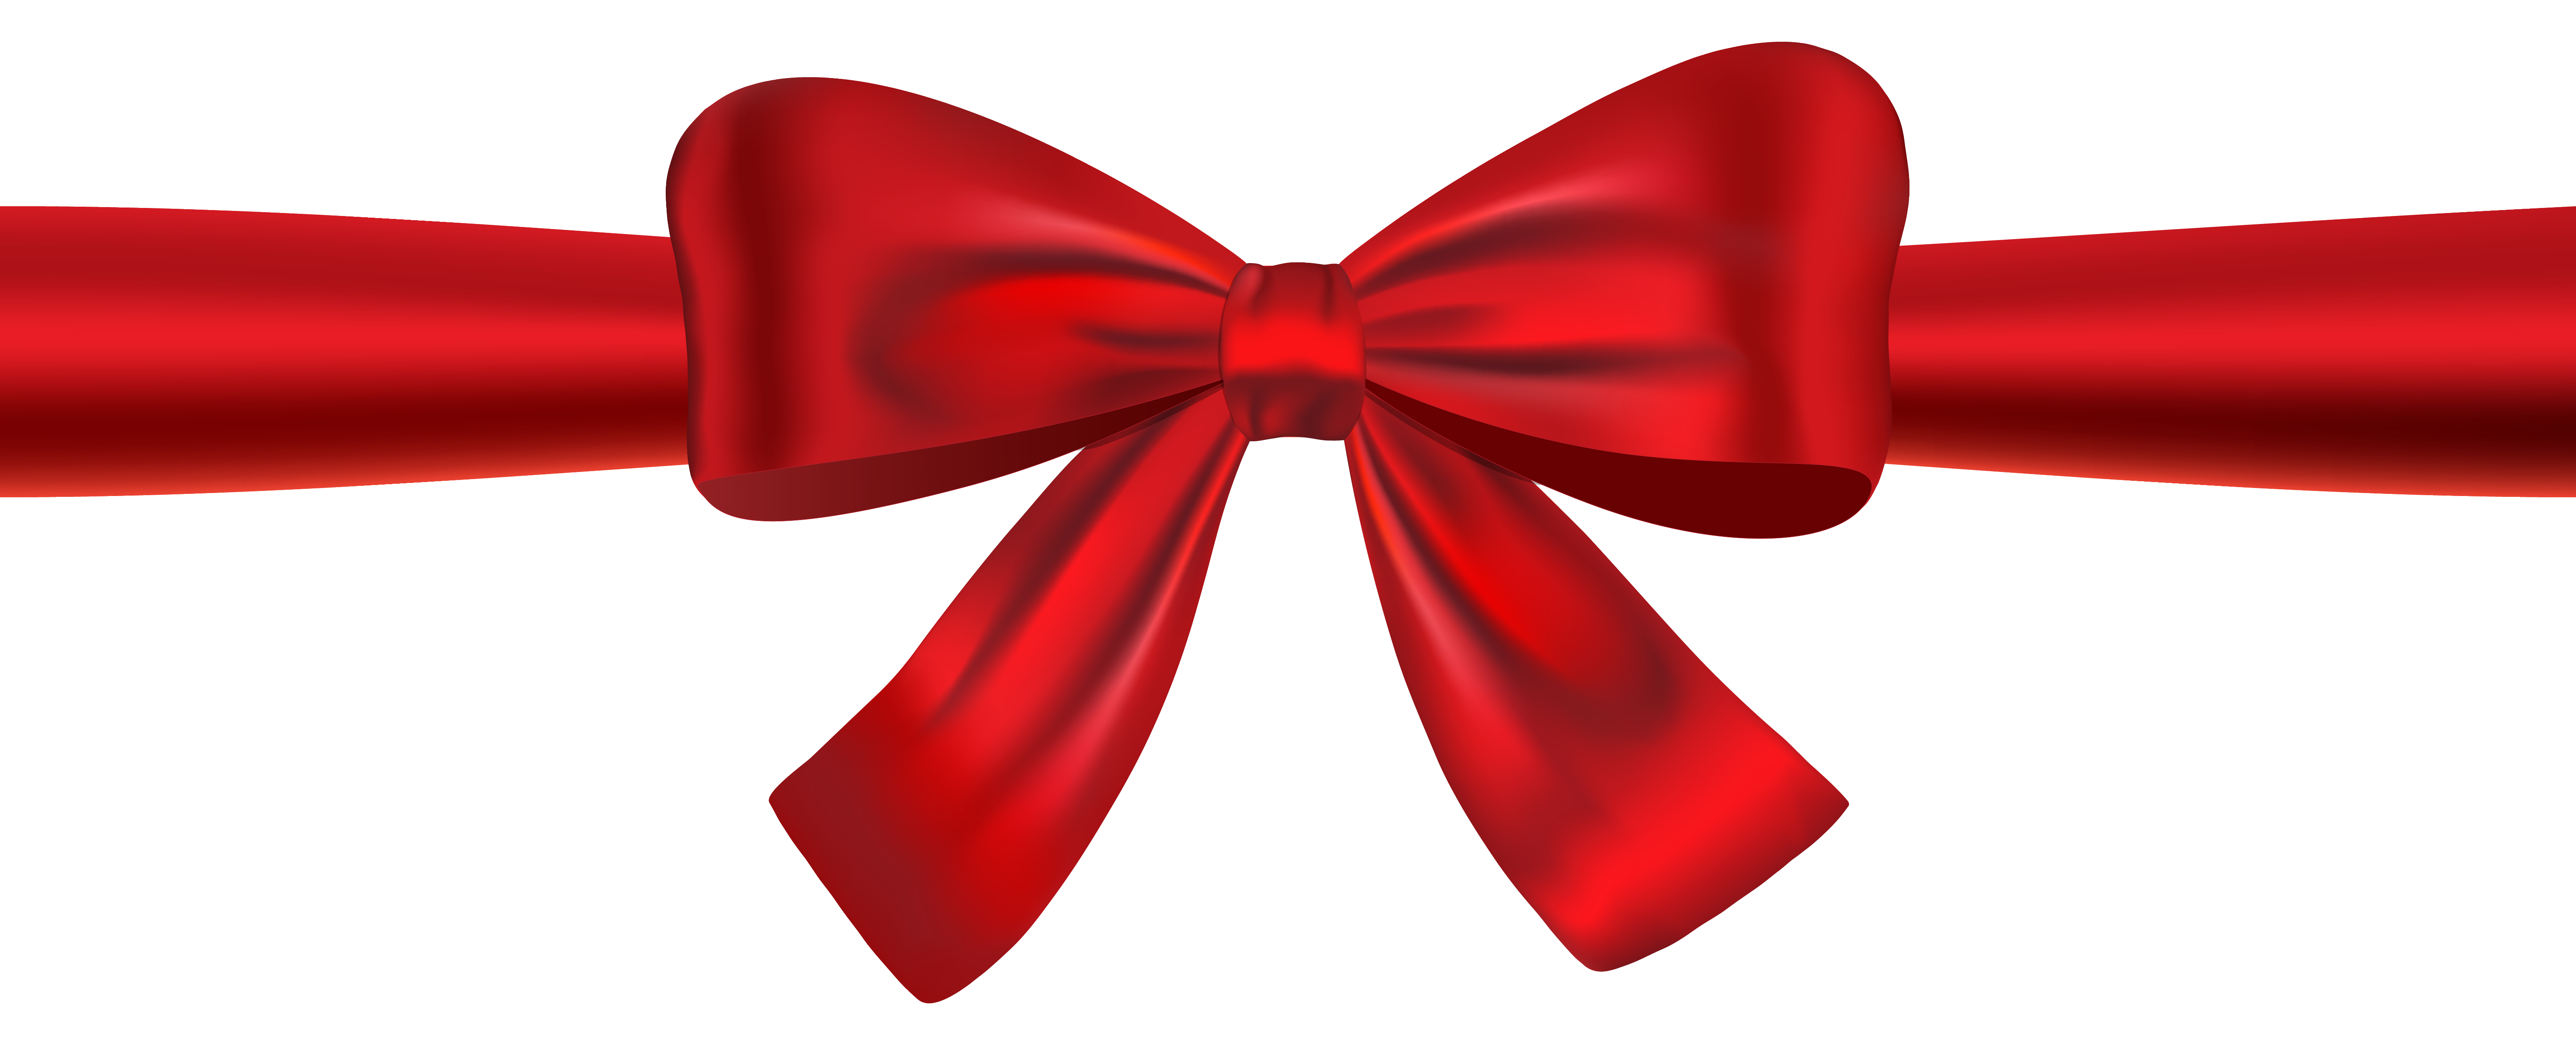 6110x2461 Red Ribbon And Bow Clipart Clippart. Clipart Images